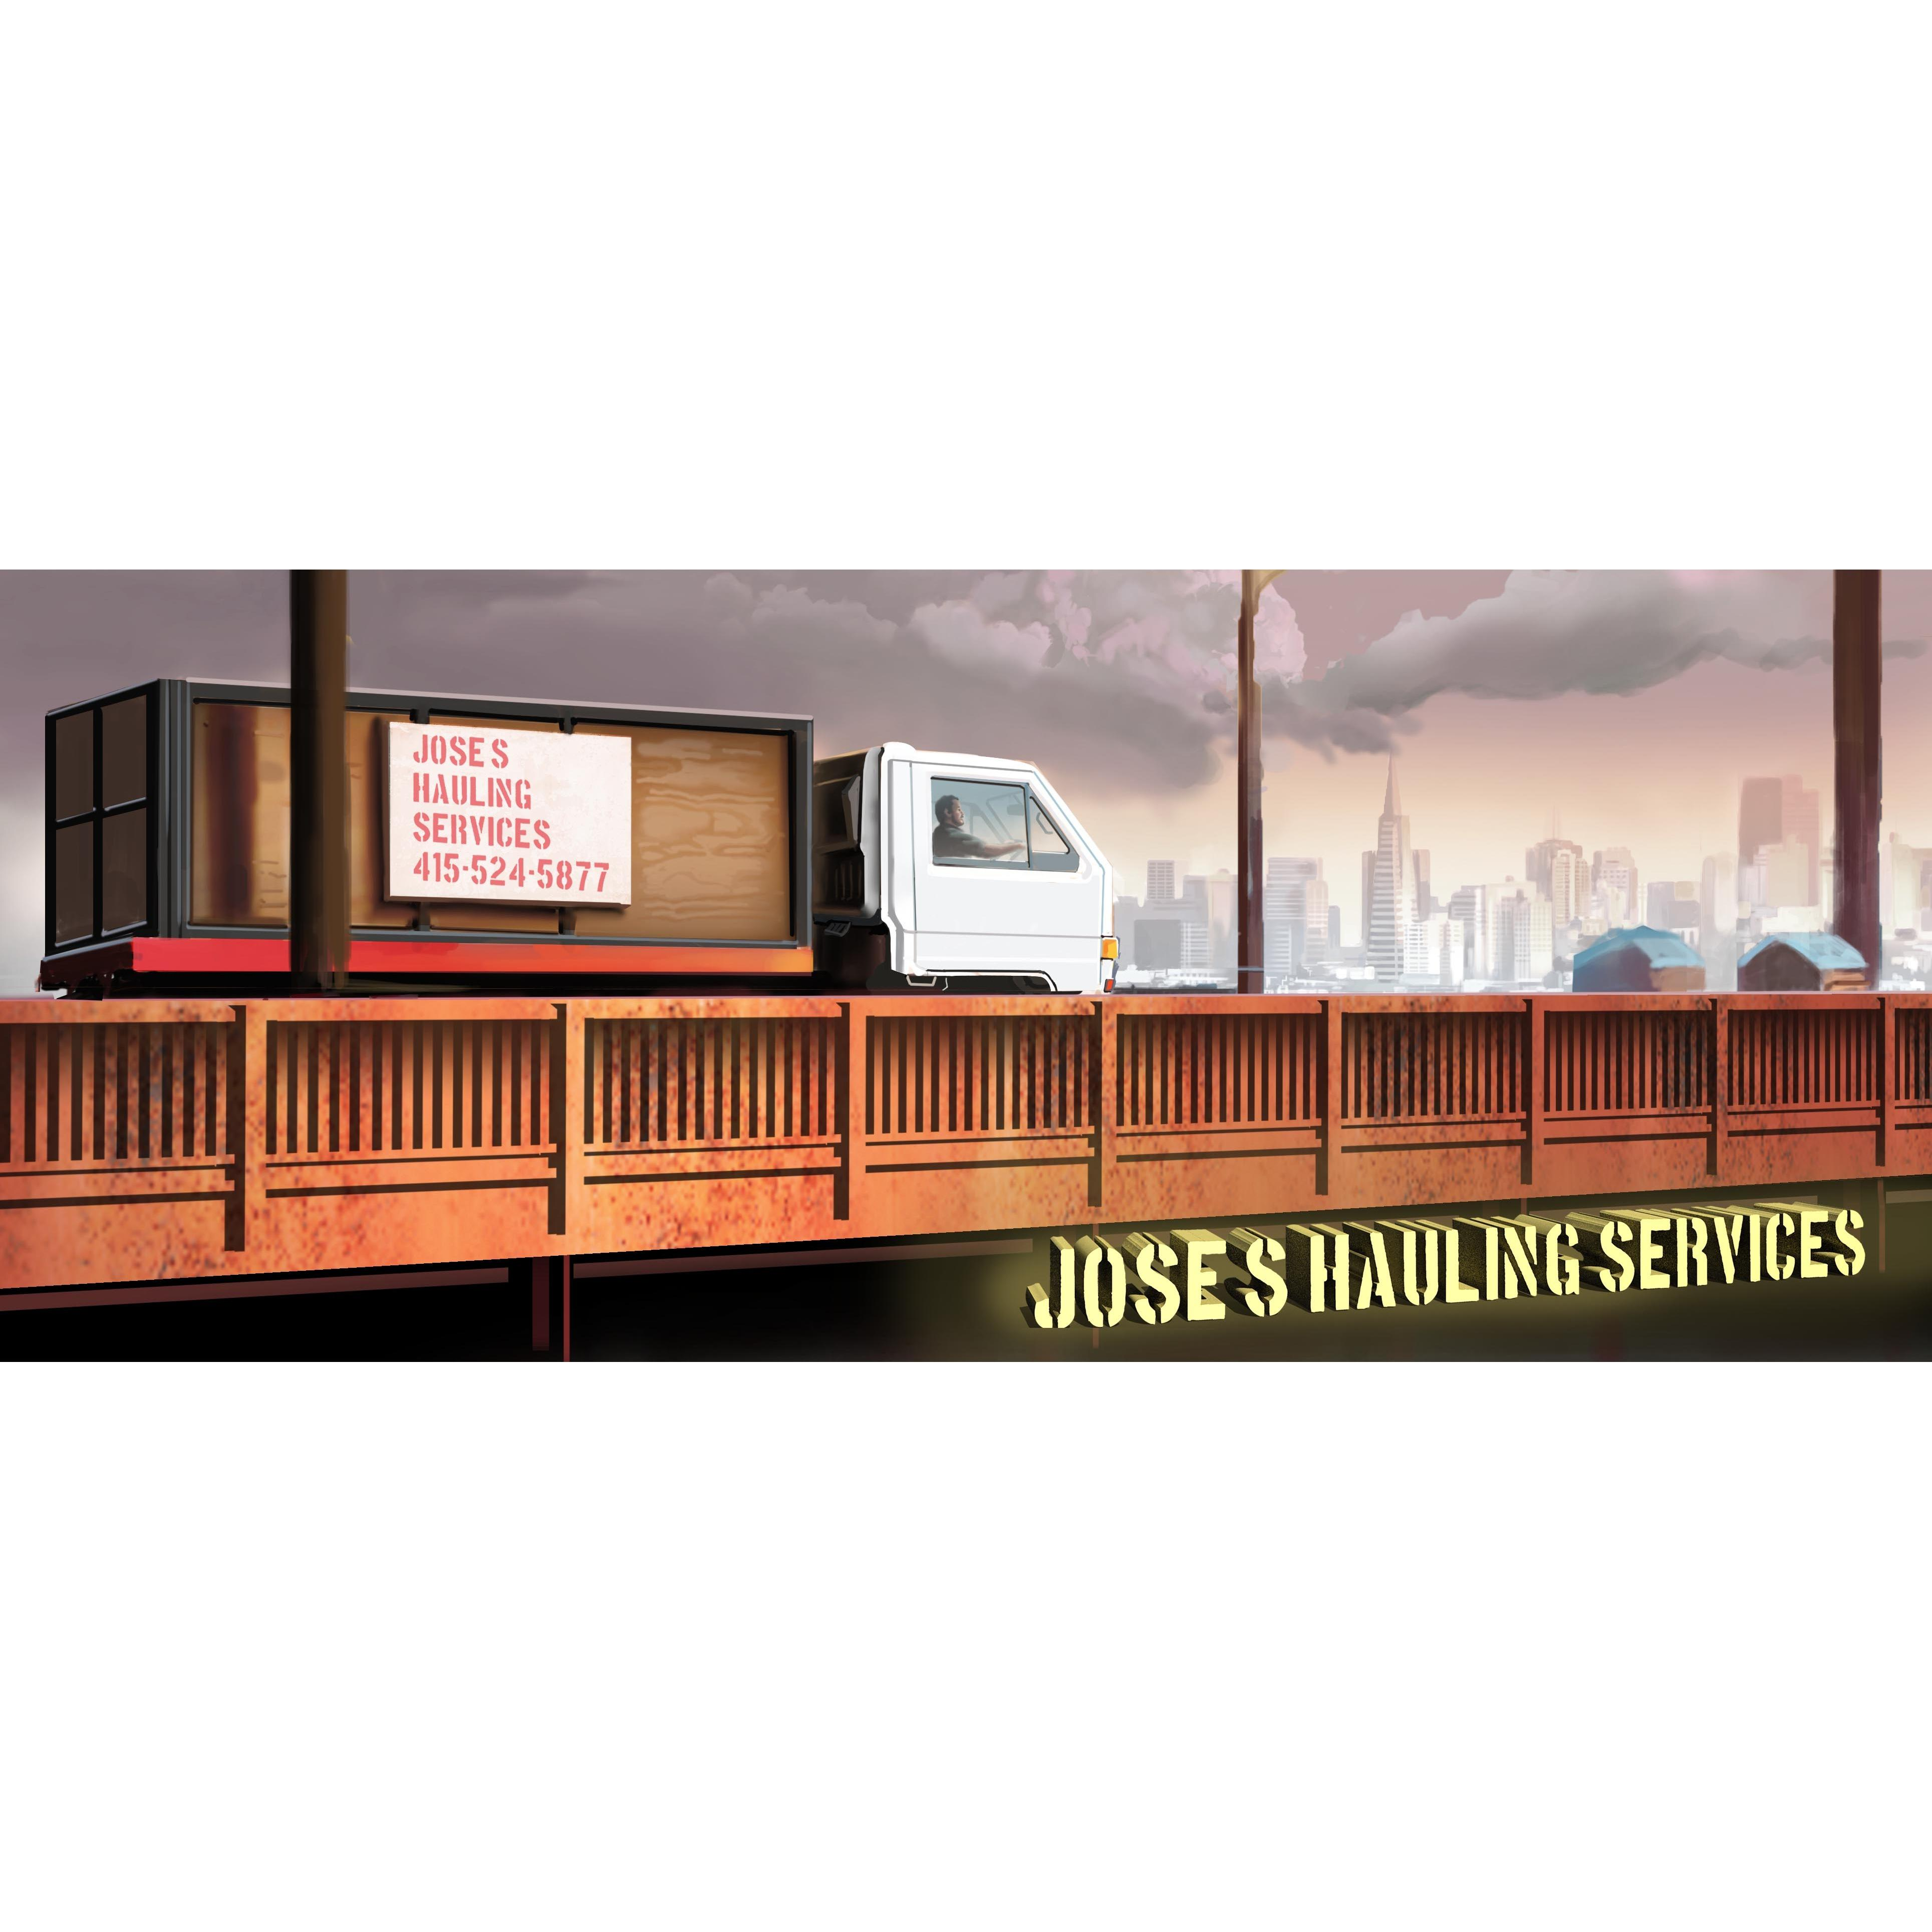 Jose's Hauling and Home Improvements